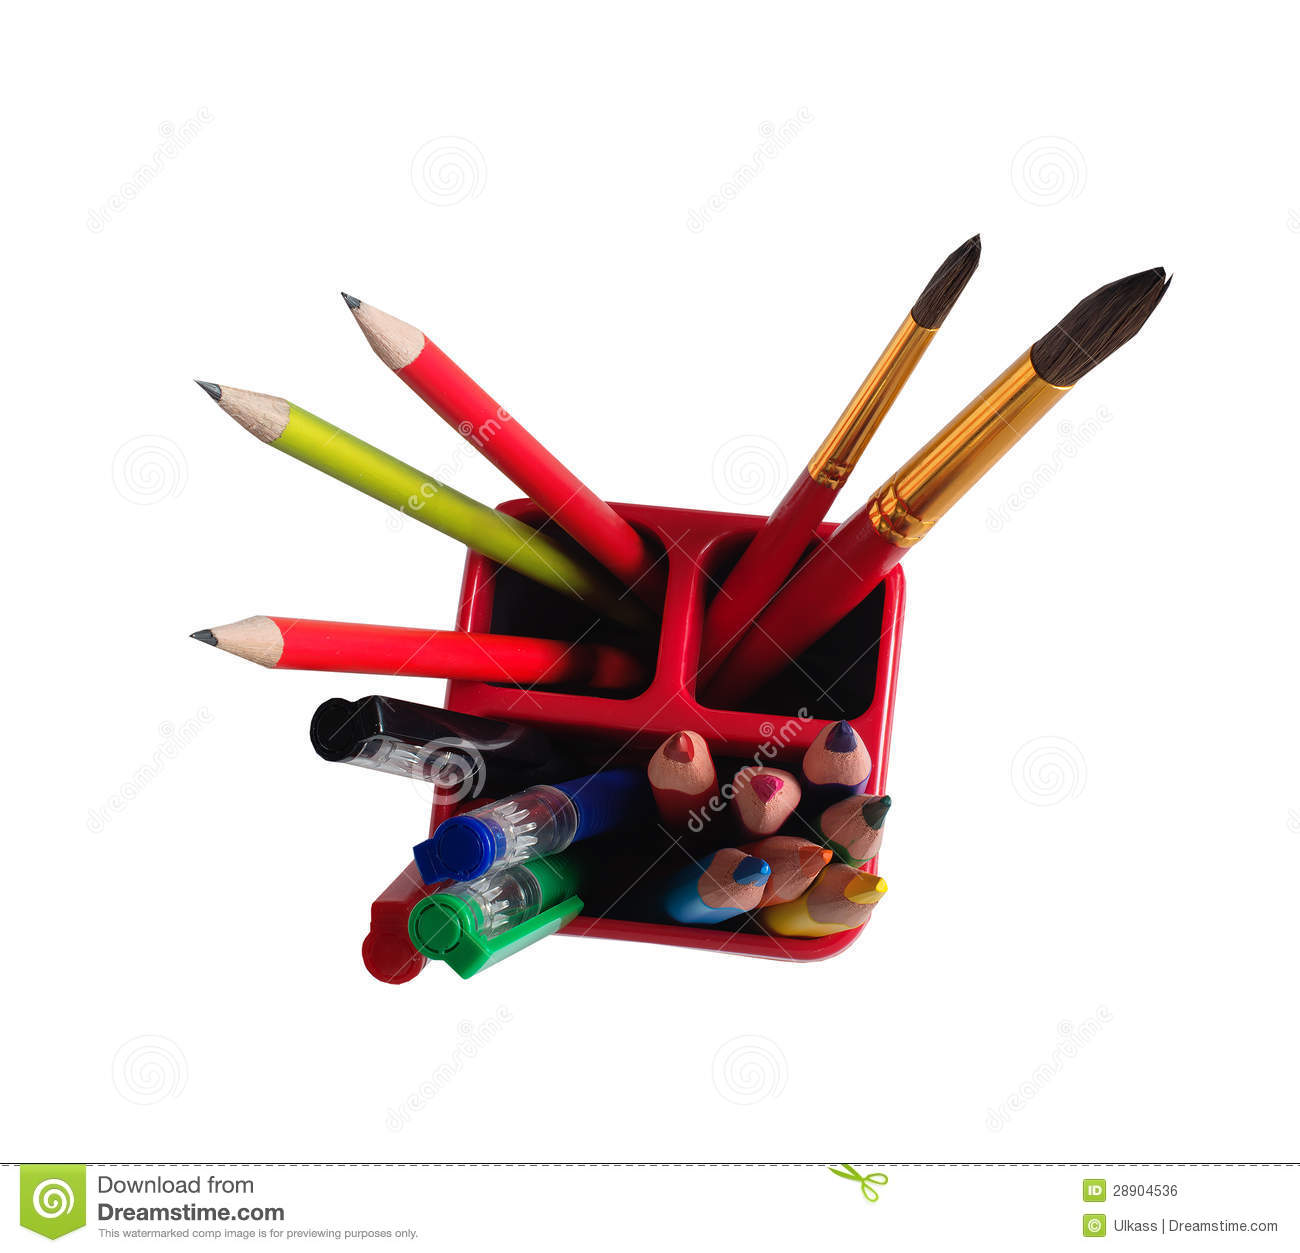 Download School Accessories: Pencils, Brushes, Pens In A Glass Stock Photo - Image of design, accessories: 28904536